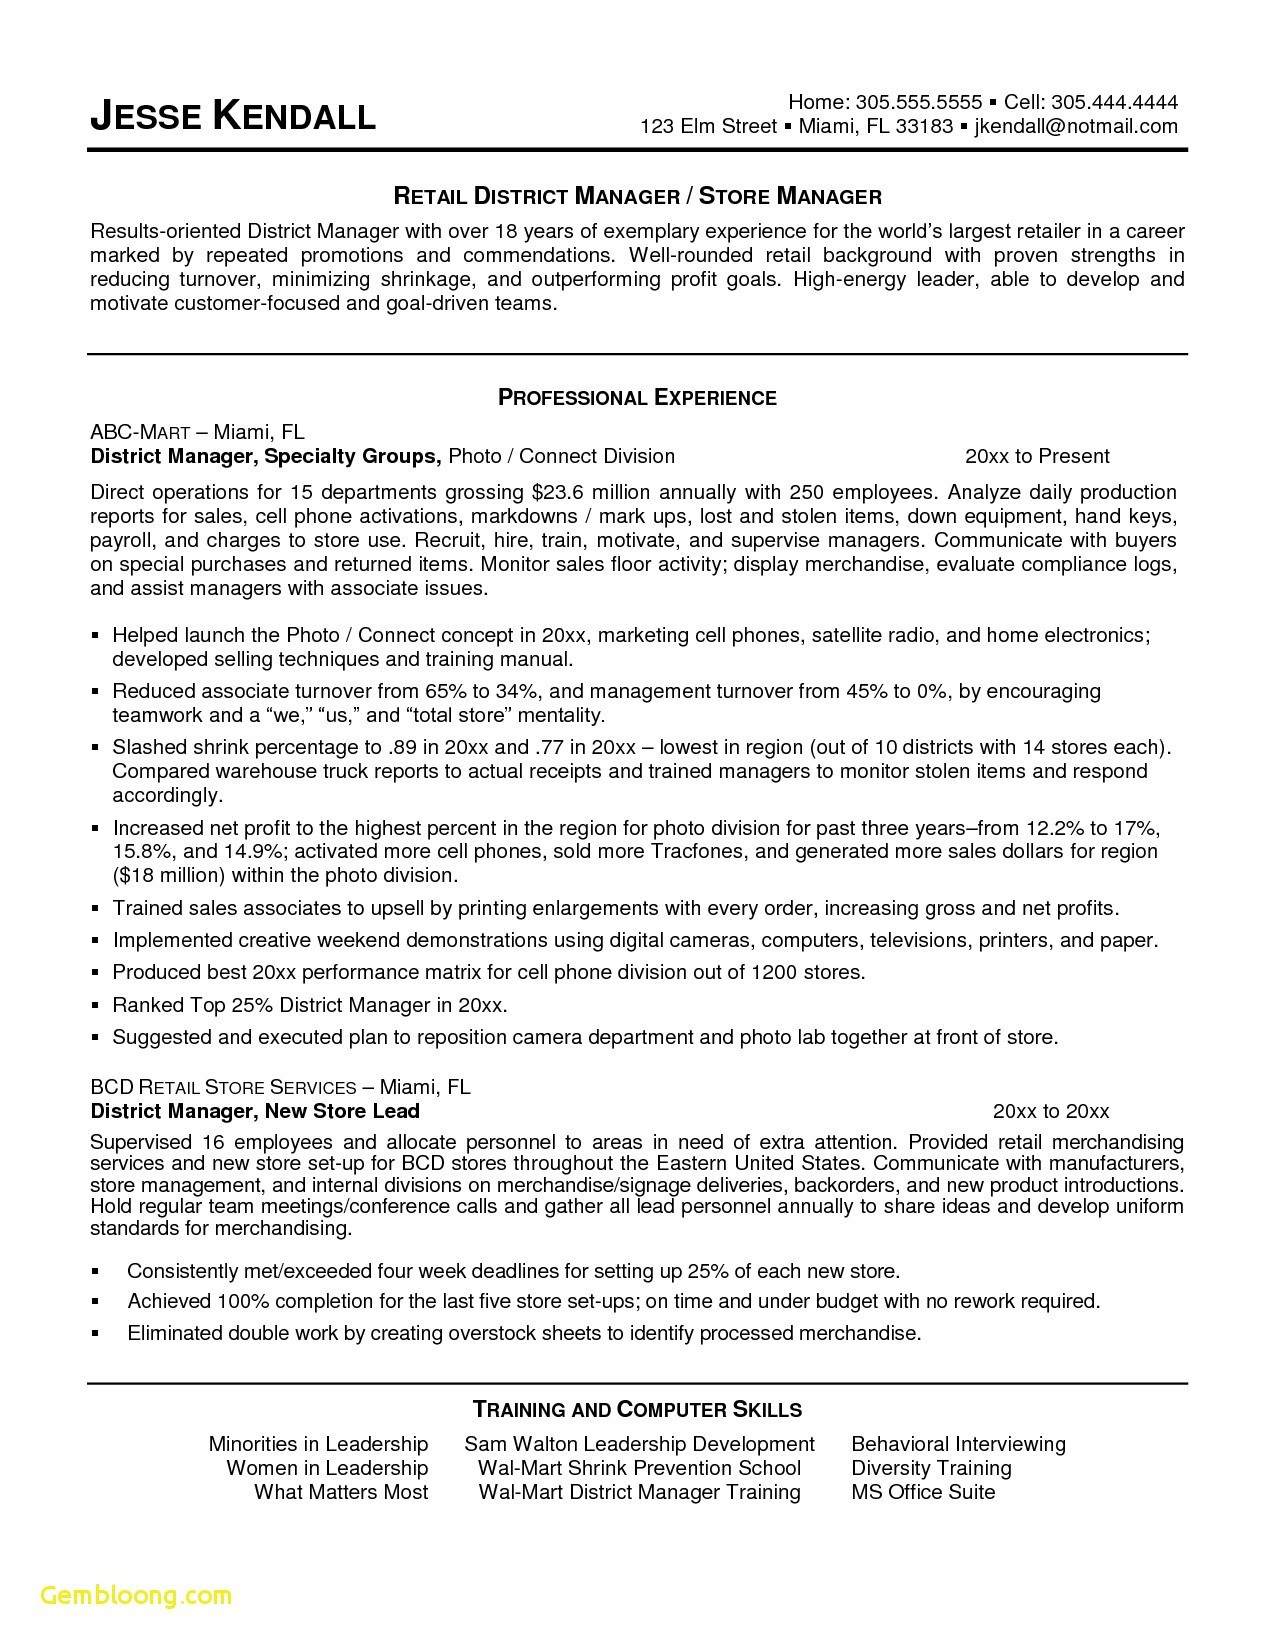 Marriott School Resume Template - Customer Service Manager Resume Unique Fresh Grapher Resume Sample